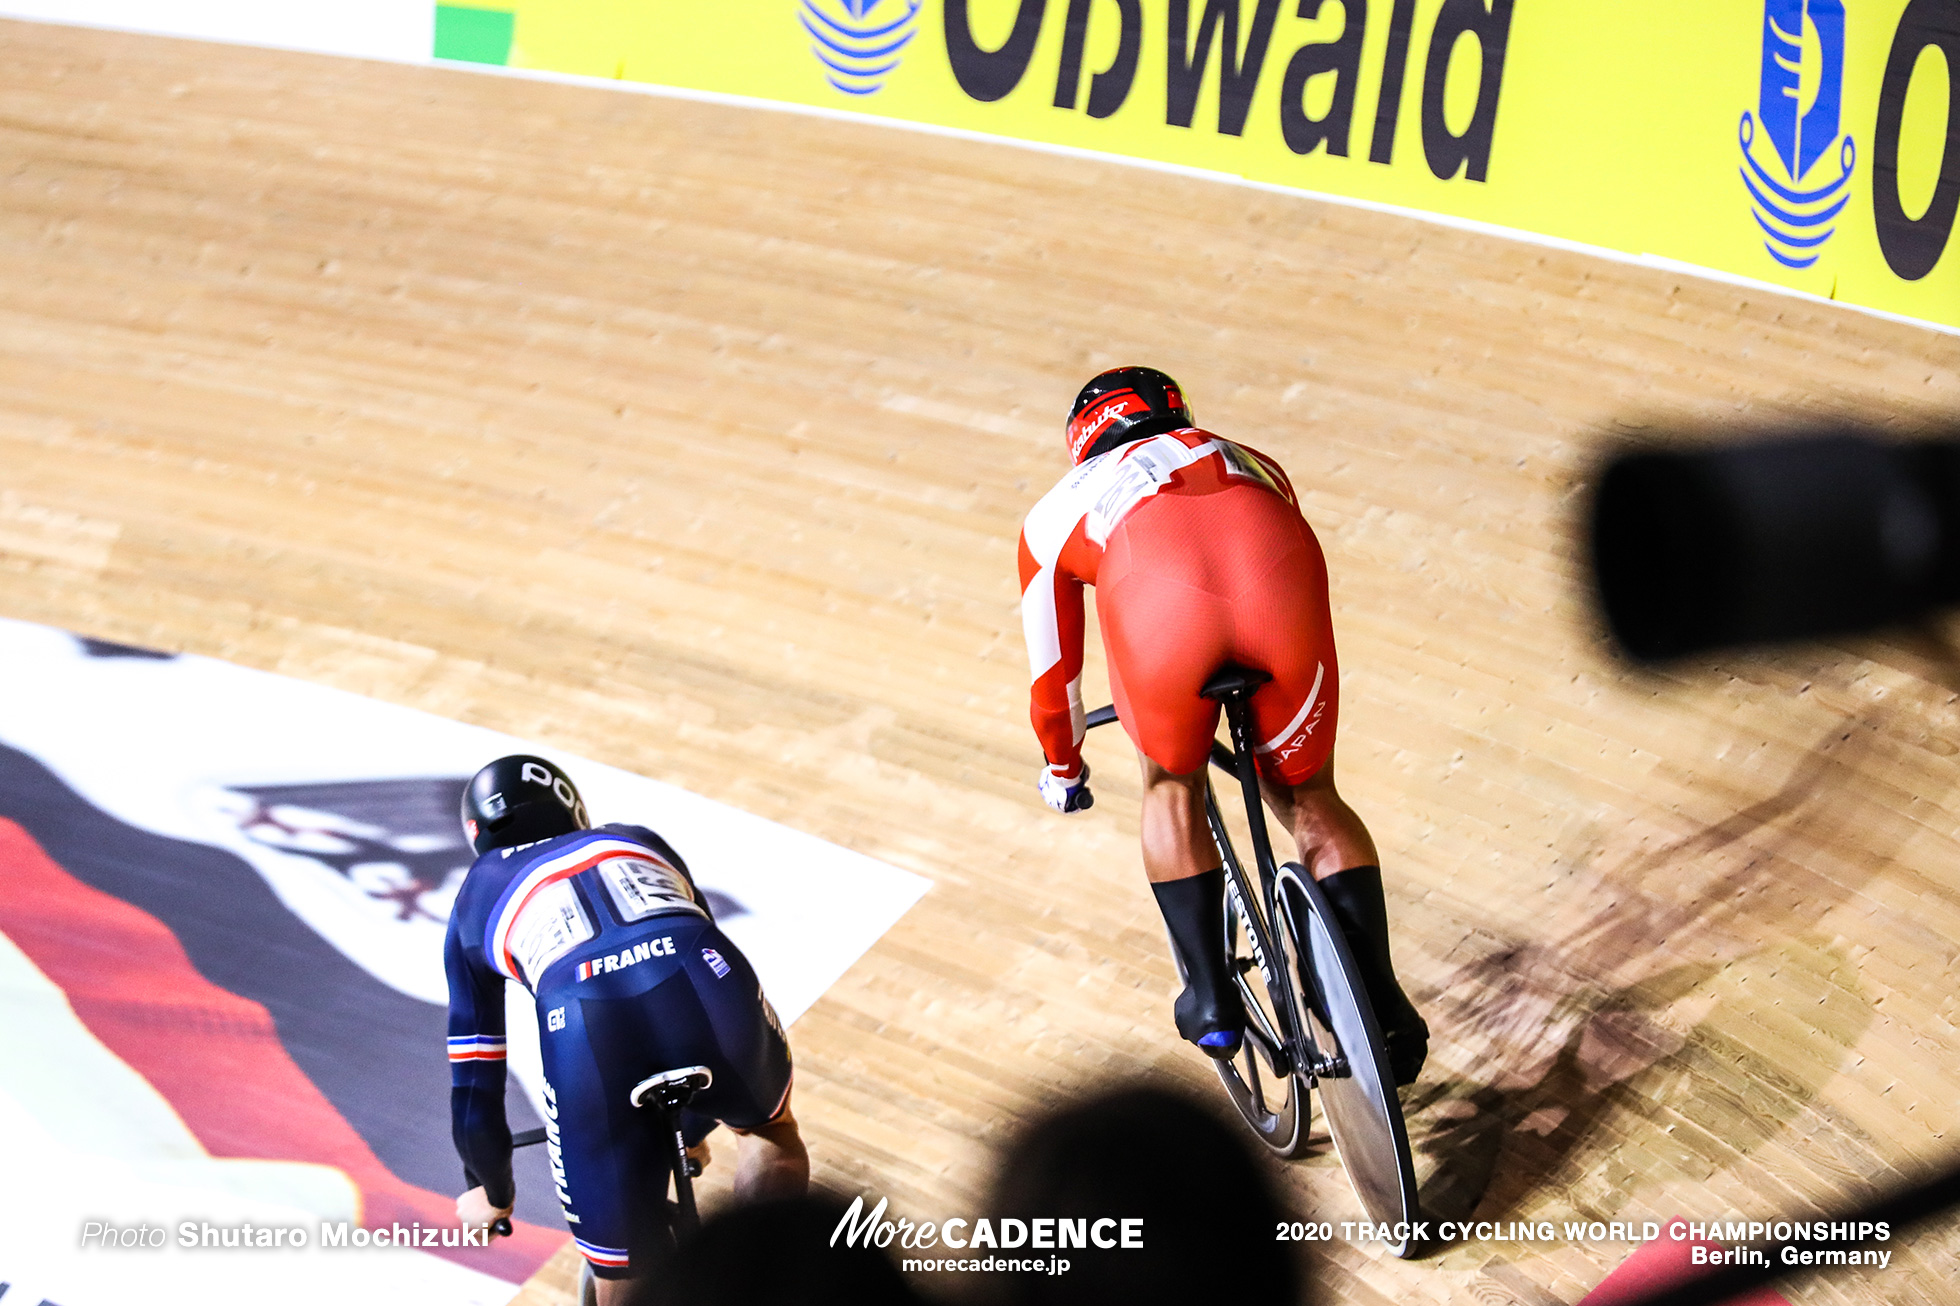 1/8 Finals / Men's Sprint / 2020 Track Cycling World Championships, Nitta Yudai 新田祐大, Quentin Caleyron クエンティン・カレロン